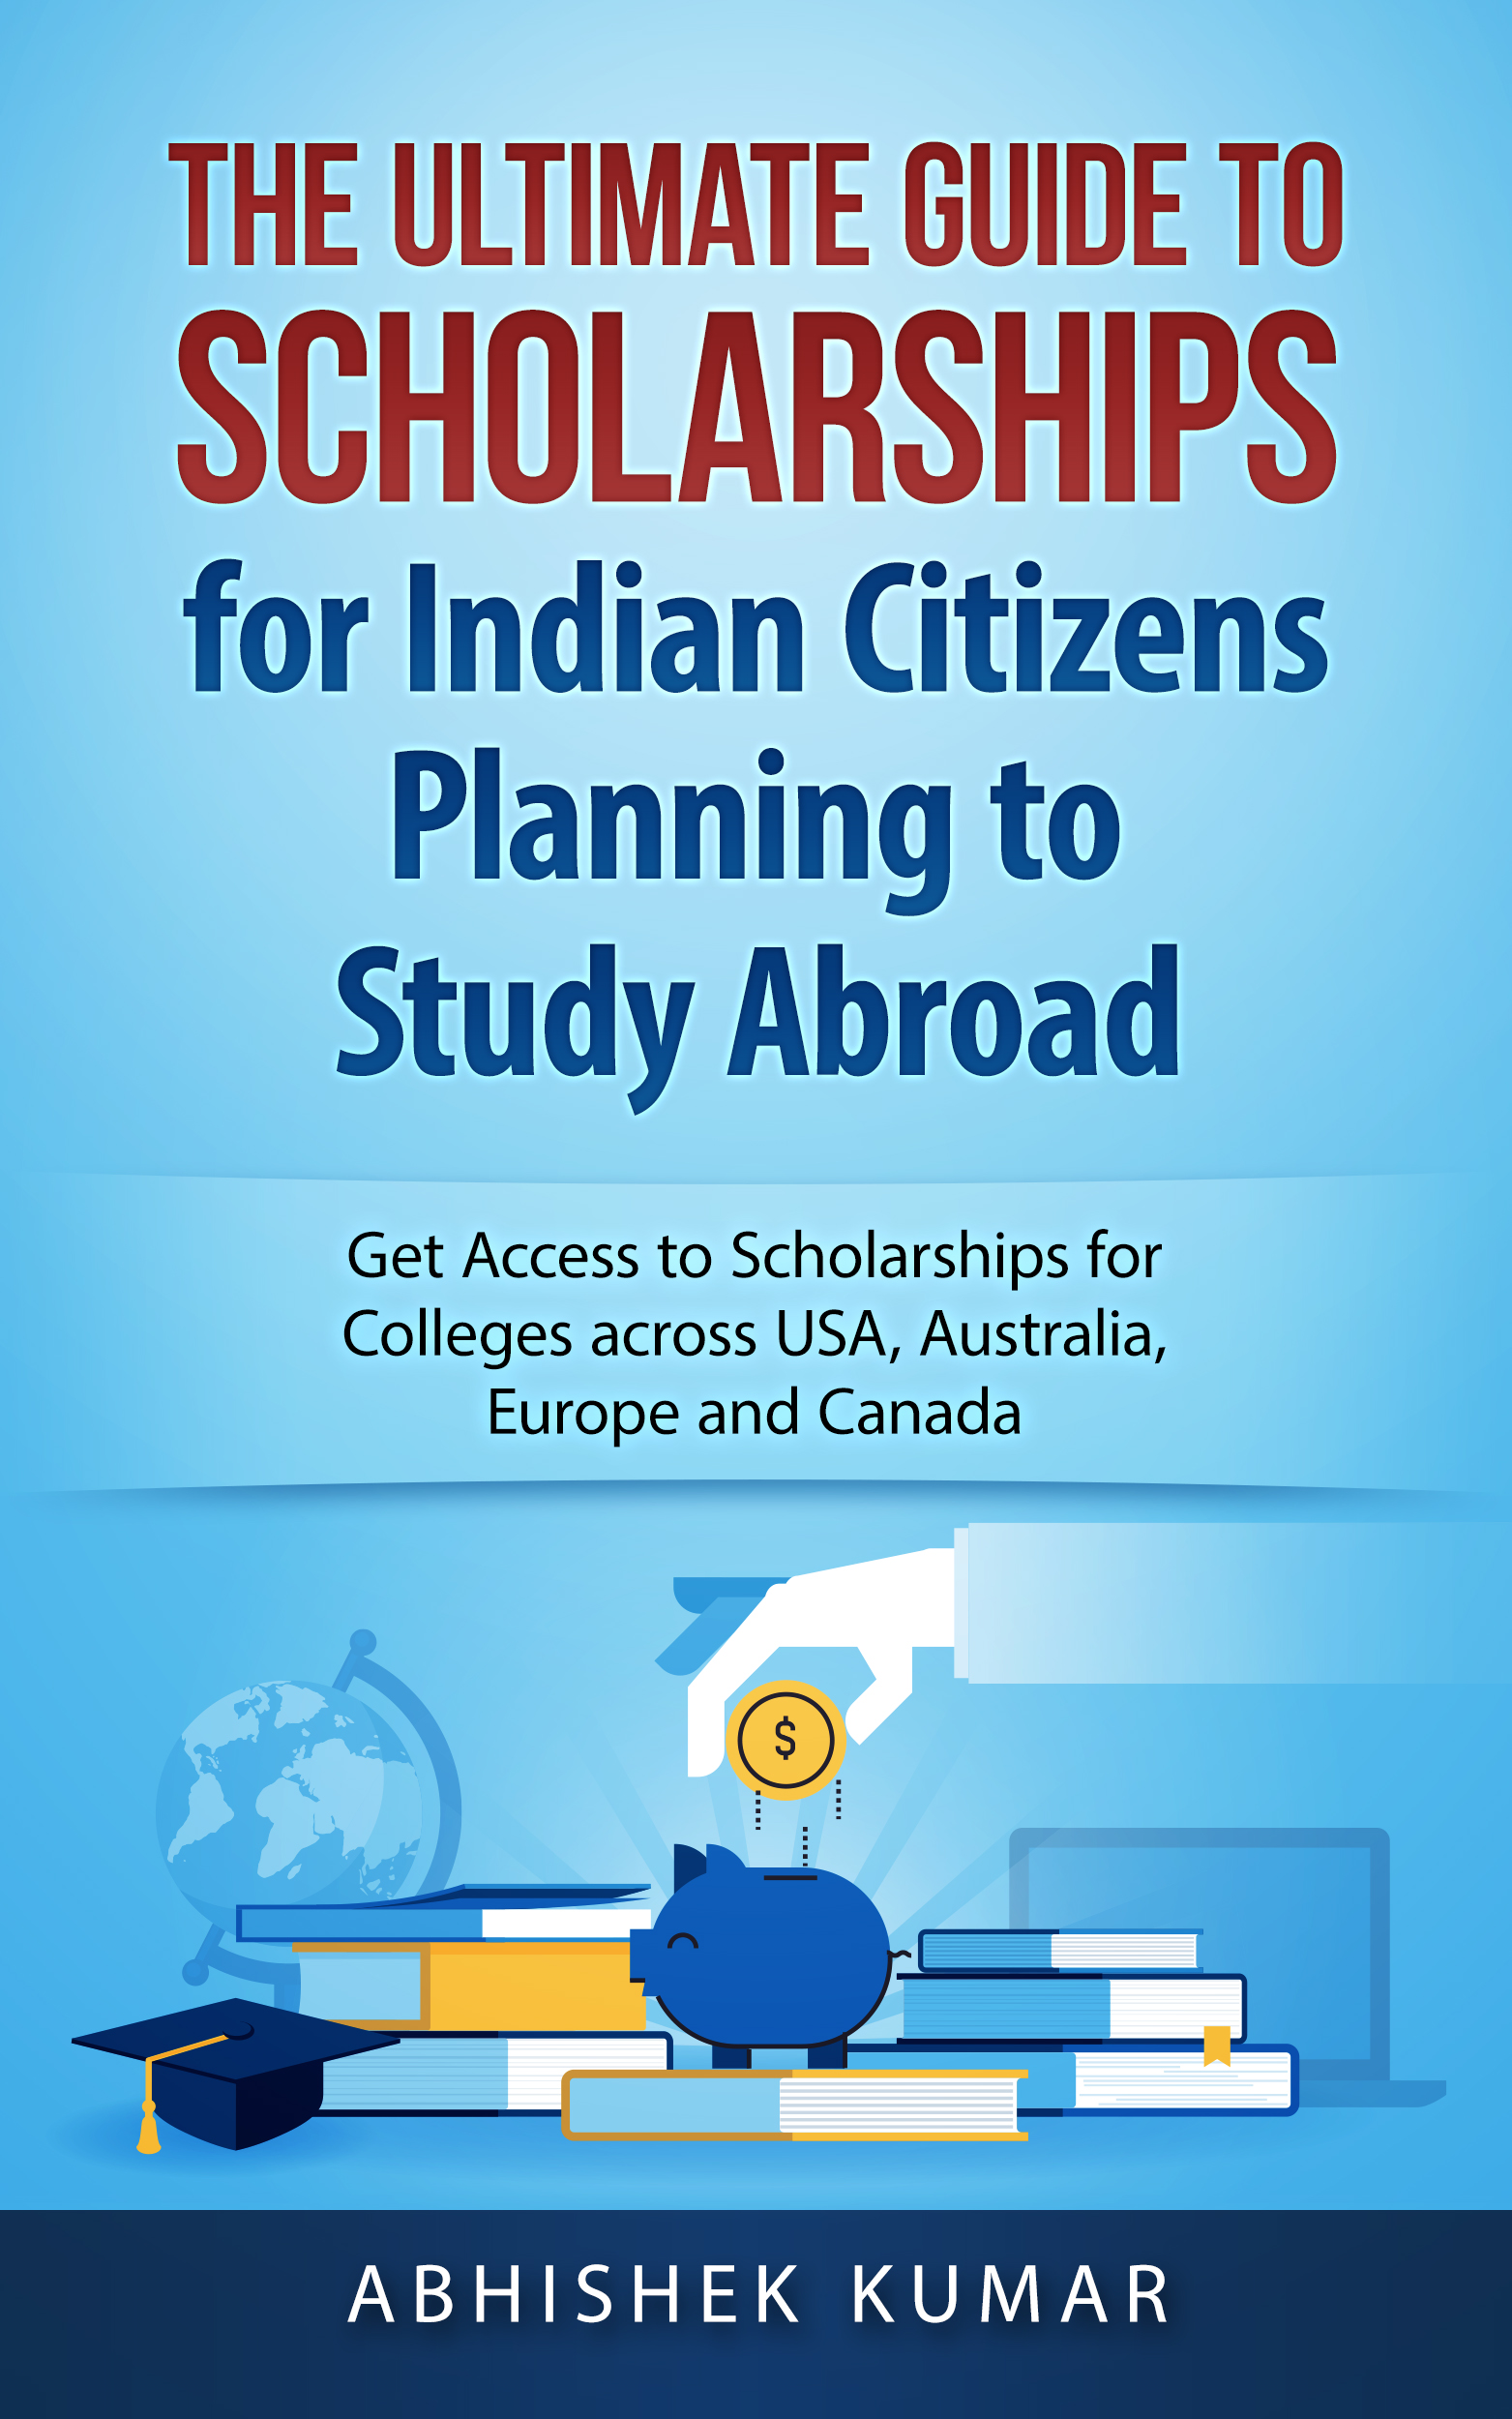 Scholarships for Indian Citizens